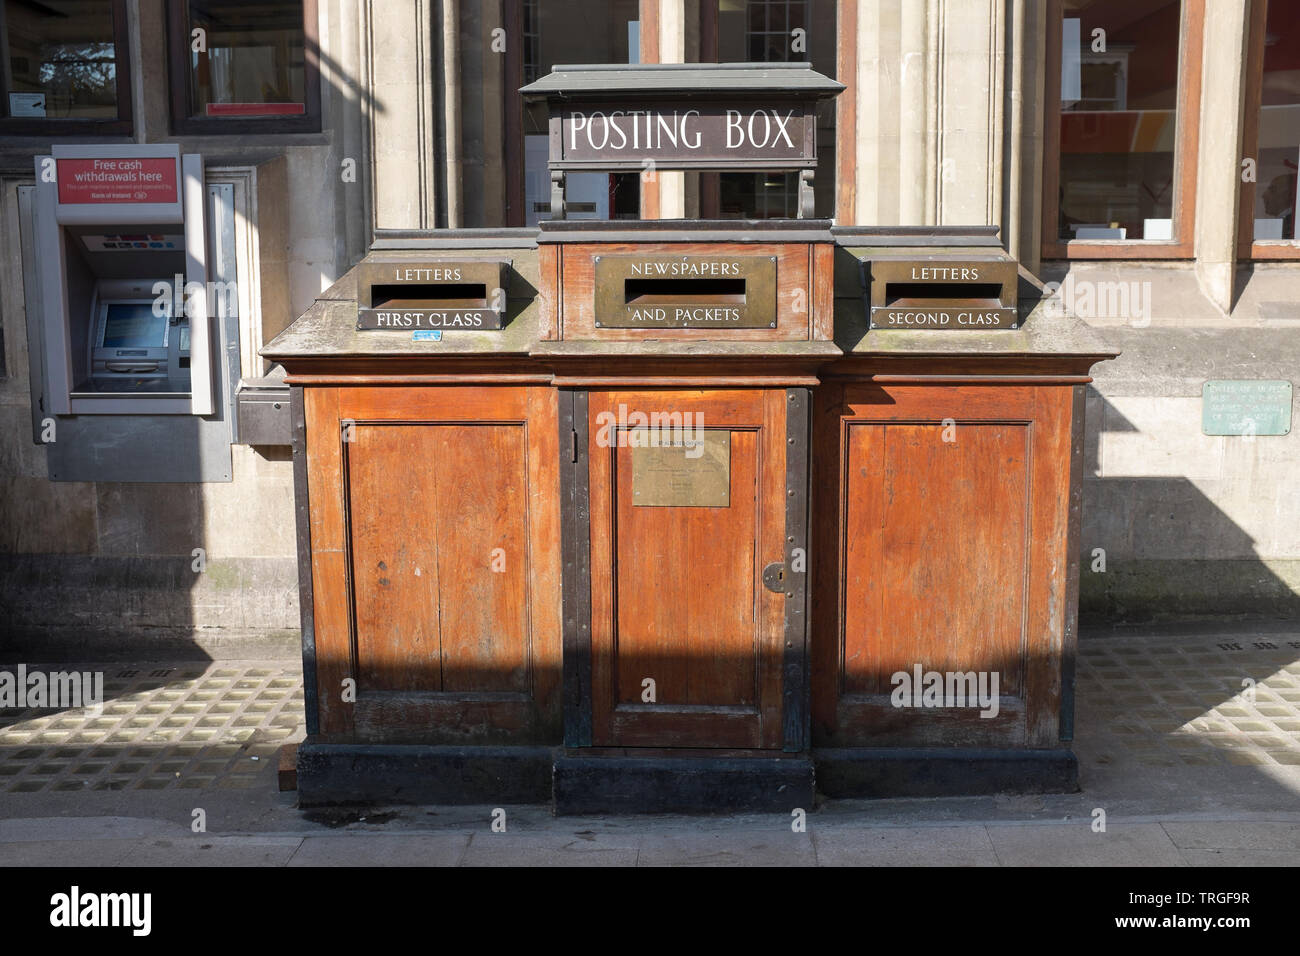 Old Post Boxes St Aldates Oxford England - Stock Image